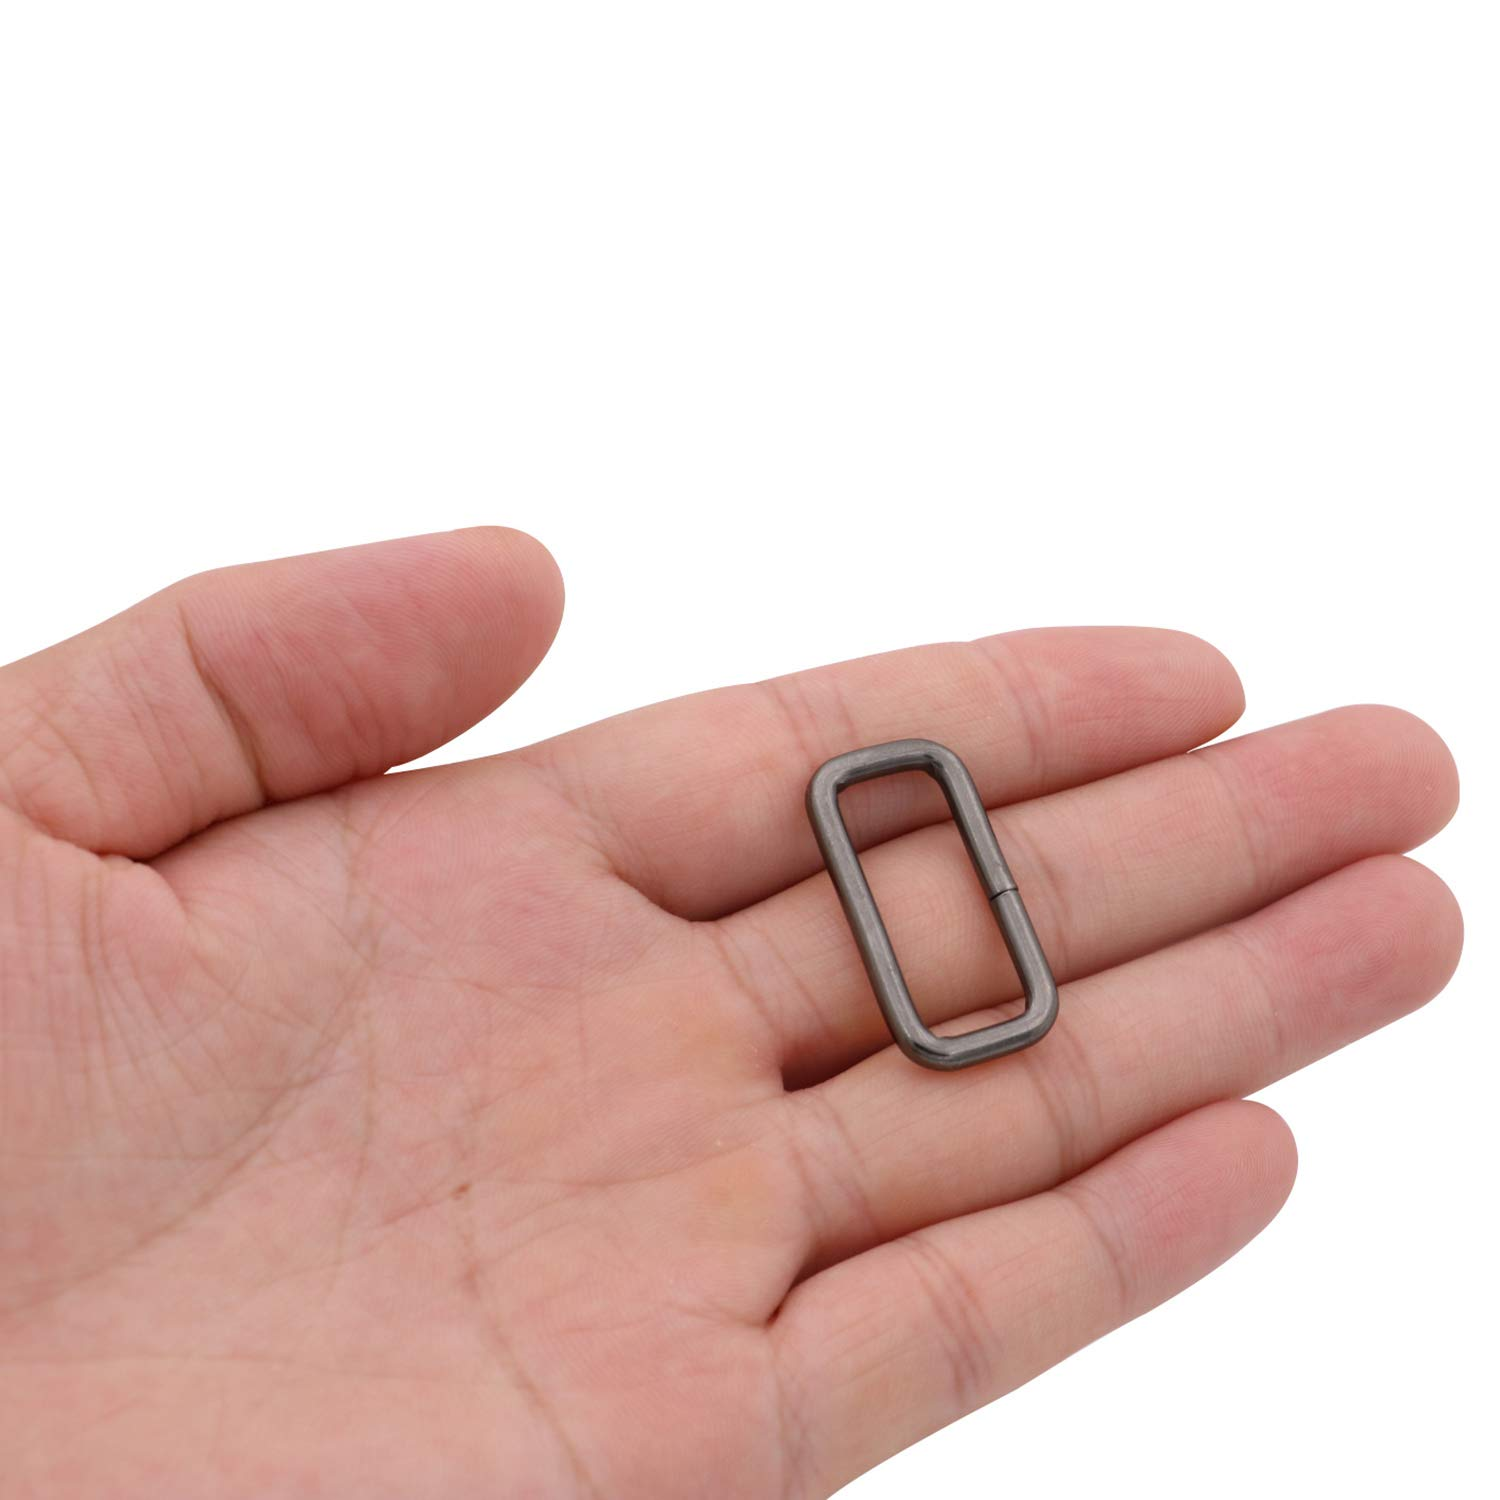 BIKICOCO Rectangle Buckle Ring Metal Non Welded 1x0.4 Inch Inside Dimensions Gunmetal Pack of 10